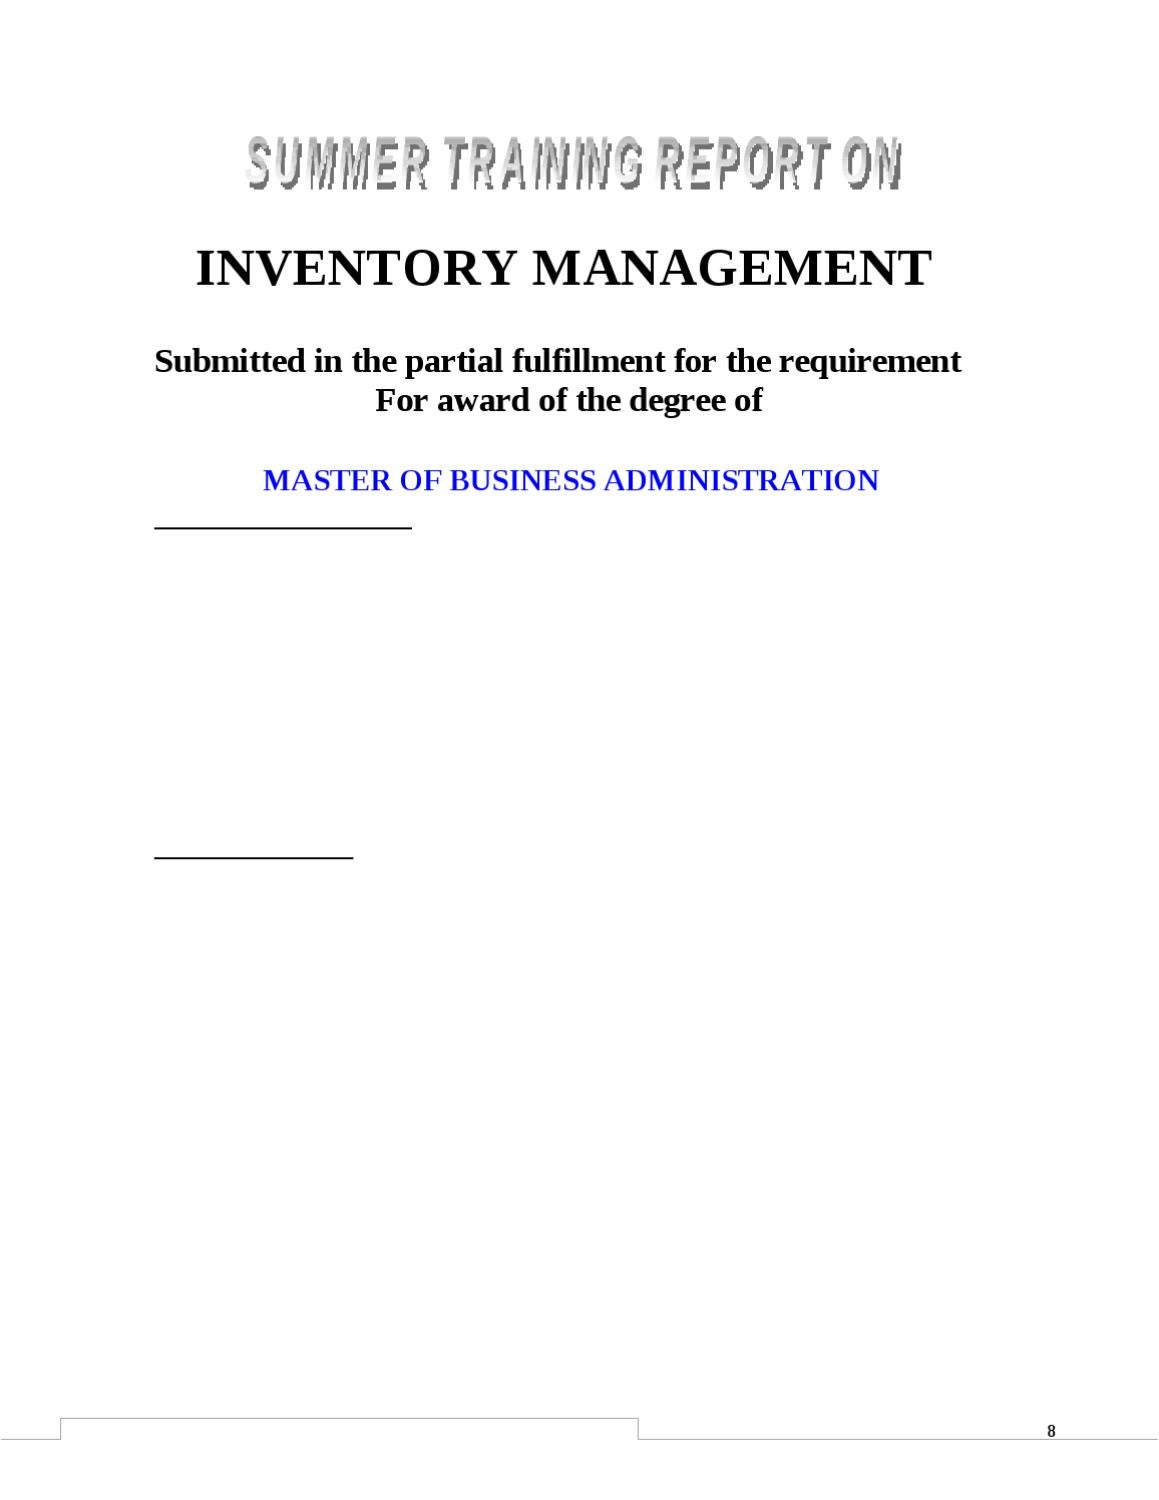 centralized inventory system essay Deliver the tools it needed to manage its inventory in the new centralized system  it reorganized its inventory management system,  case study: domino's pizza.